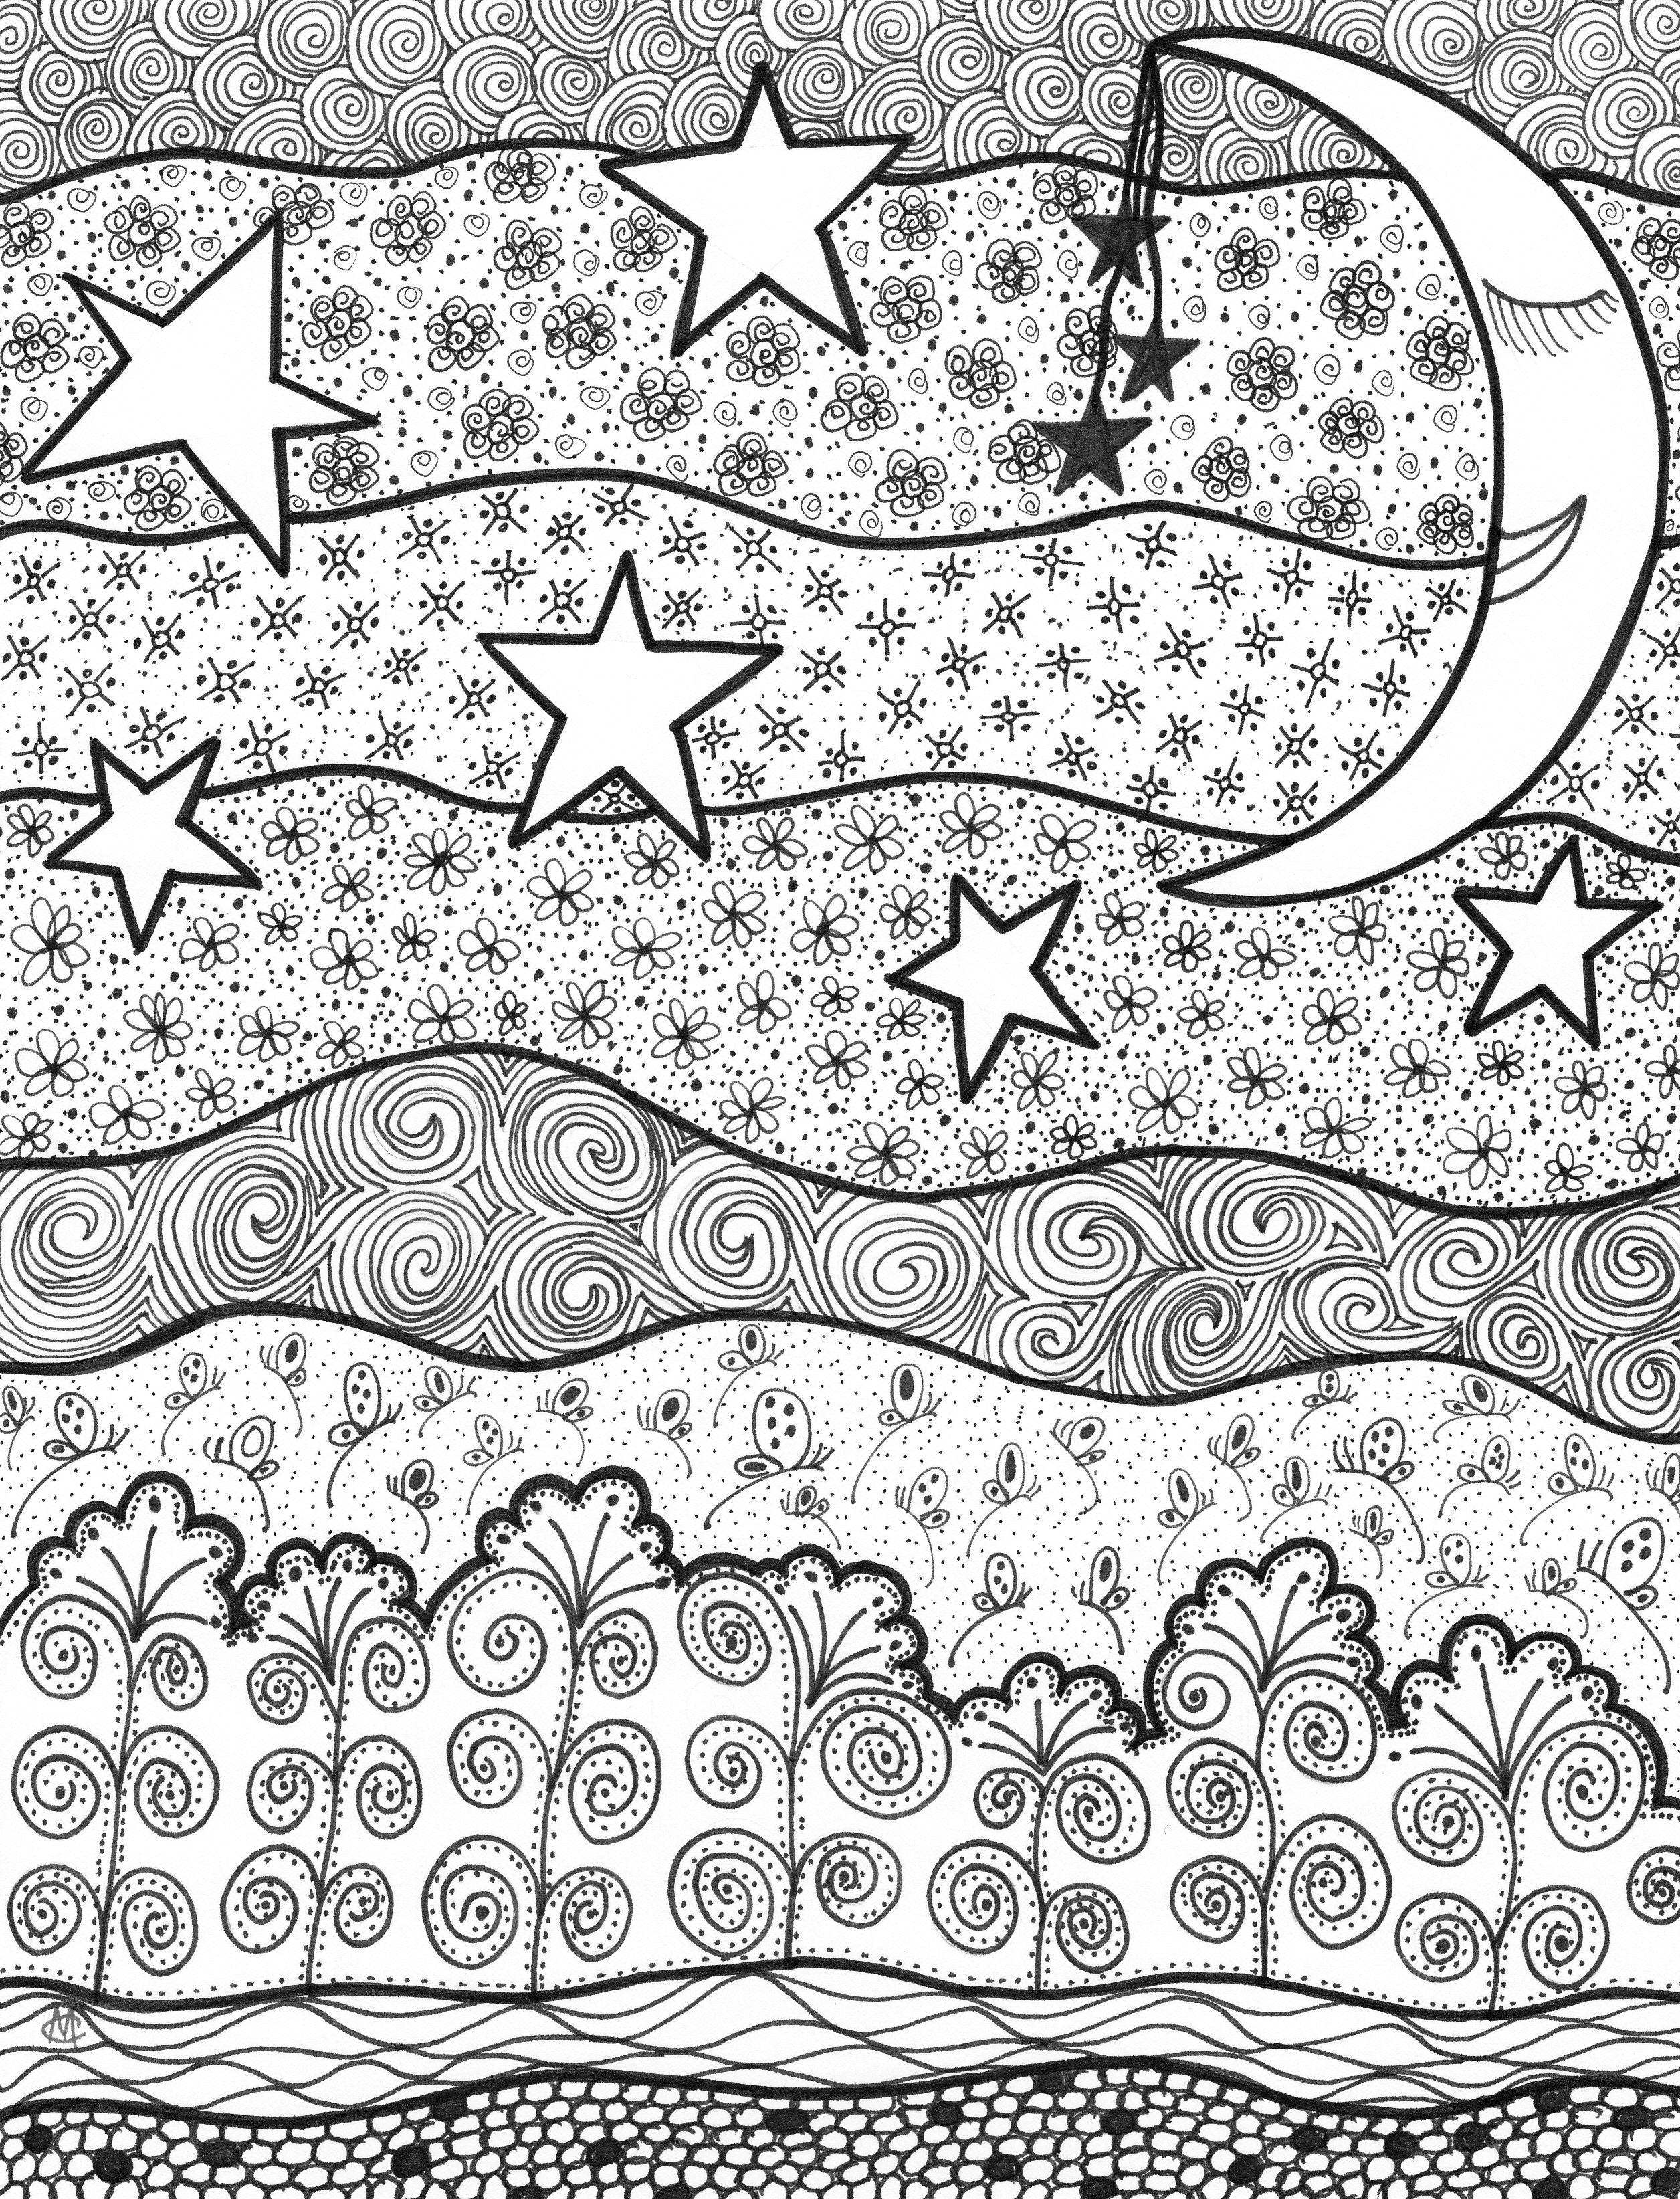 Good Night Coloring Pages Adult Coloring Pages Mandala Coloring